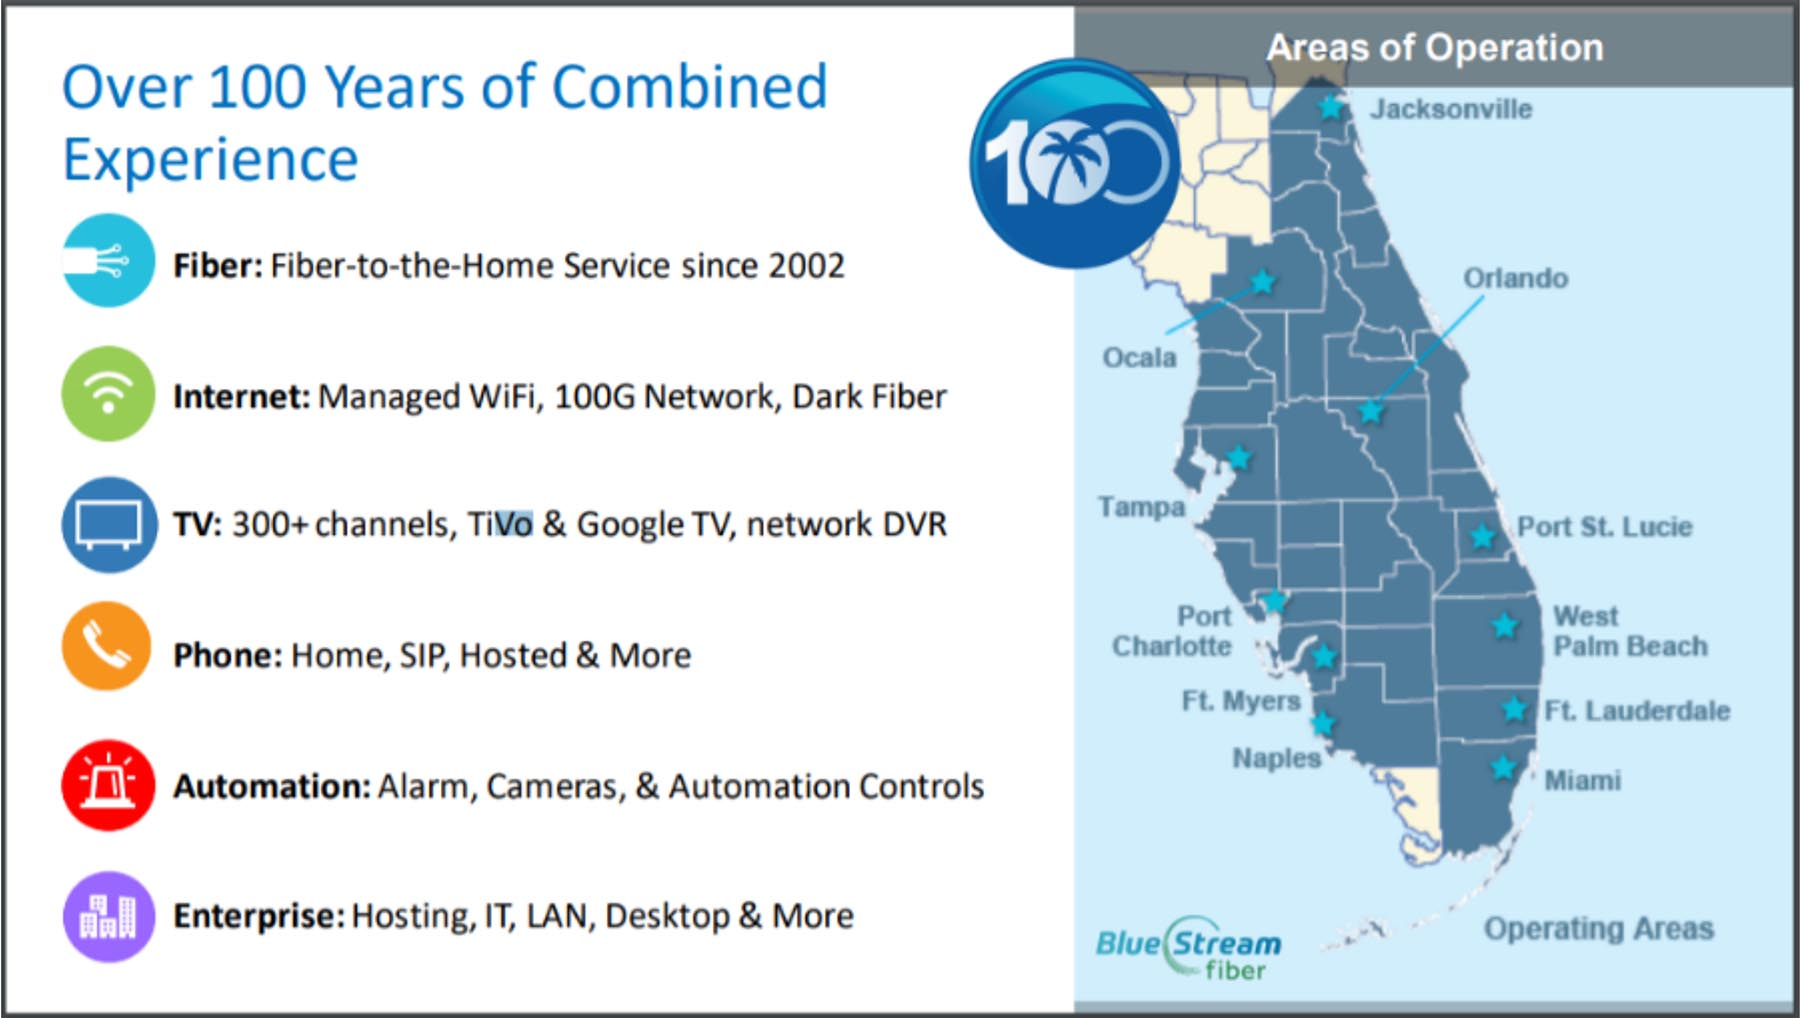 Blue Stream Fiber Service Area